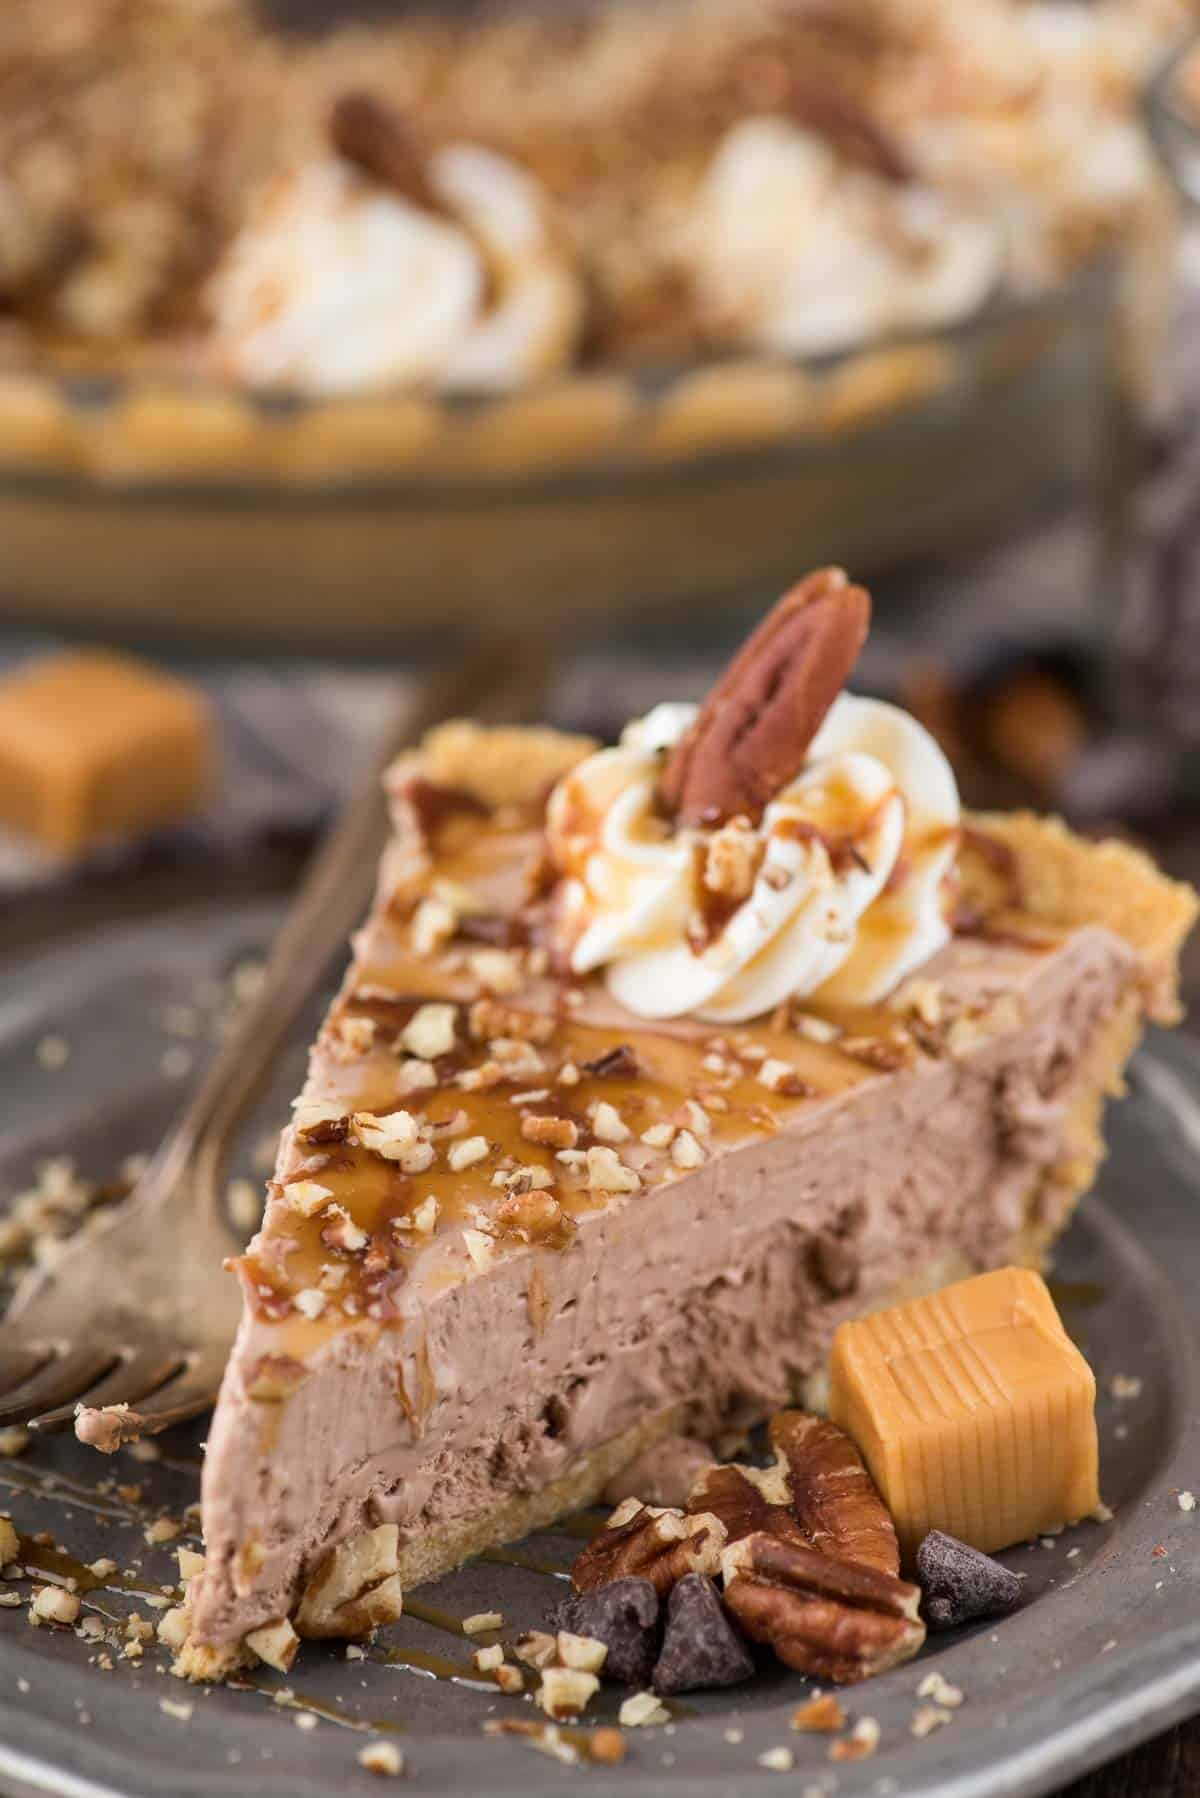 slice of turtle pie with chocolate filling, chopped pecans and caramel drizzle on metal plate